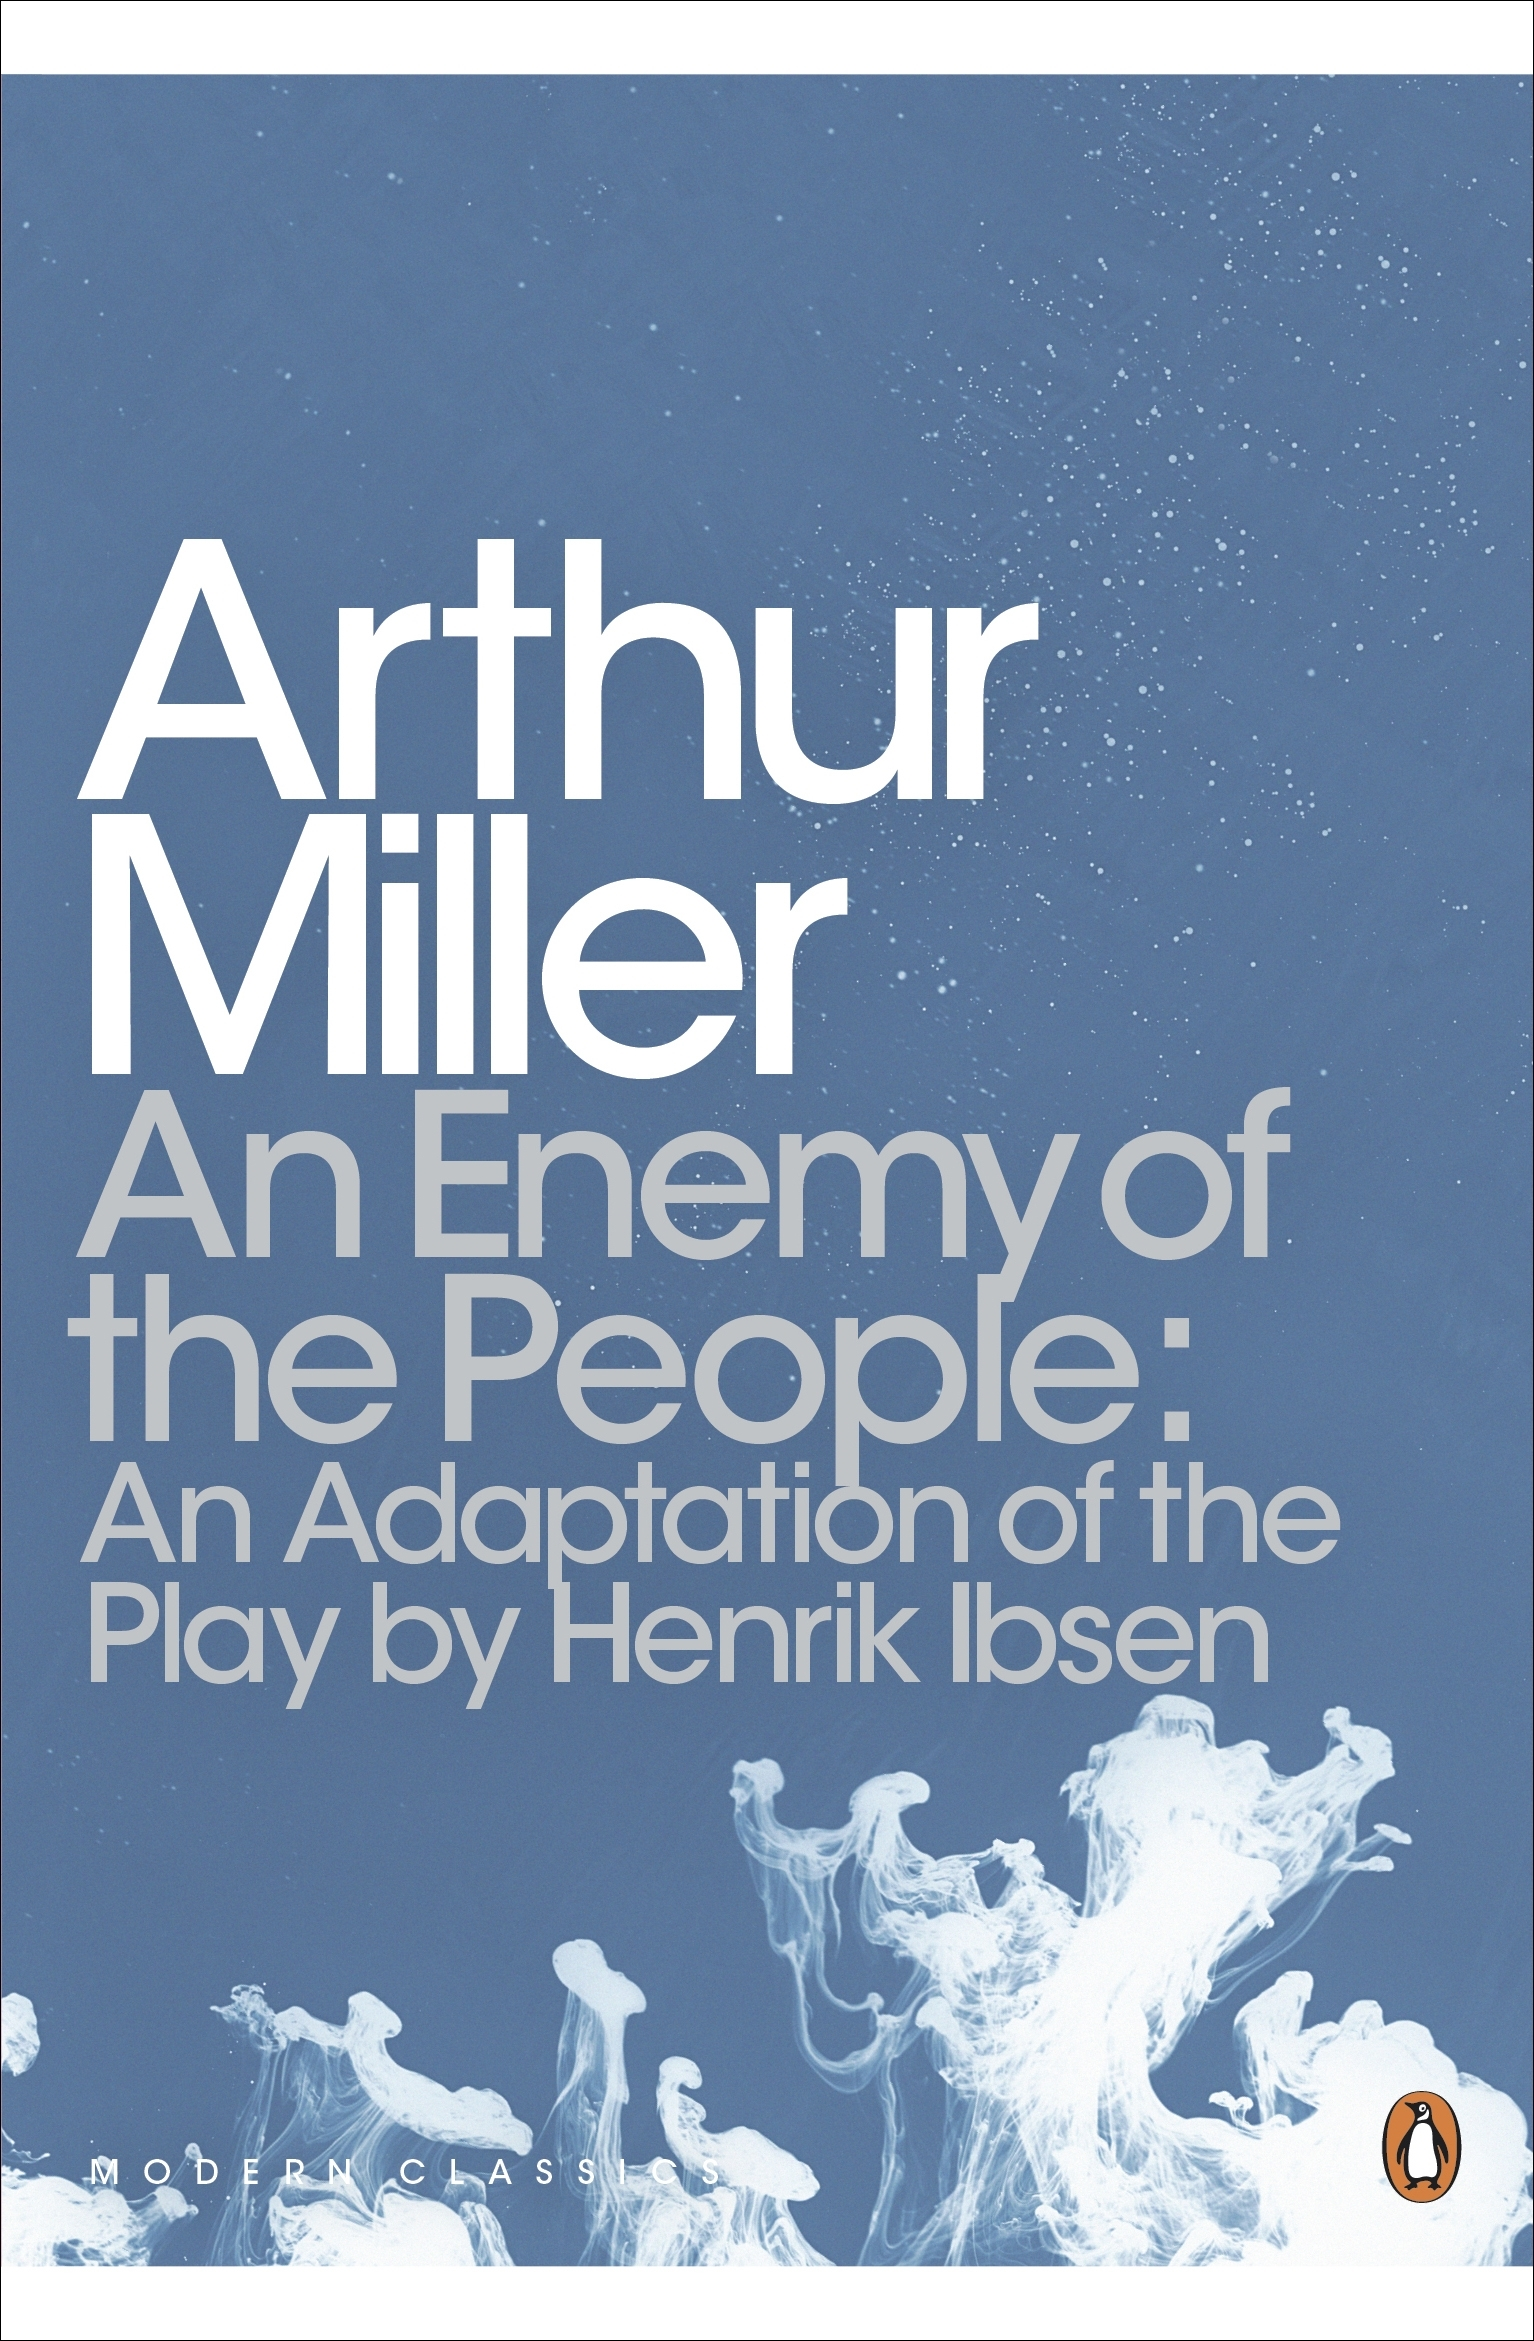 "arthur miller an enemy of the Earlier, miller had written an adaptation of henrik ibsen's 1884 play, an enemy of the people, which, according to his introduction, questioned ""whether the democratic guarantees protecting political minorities ought to be set aside in time of crisis."